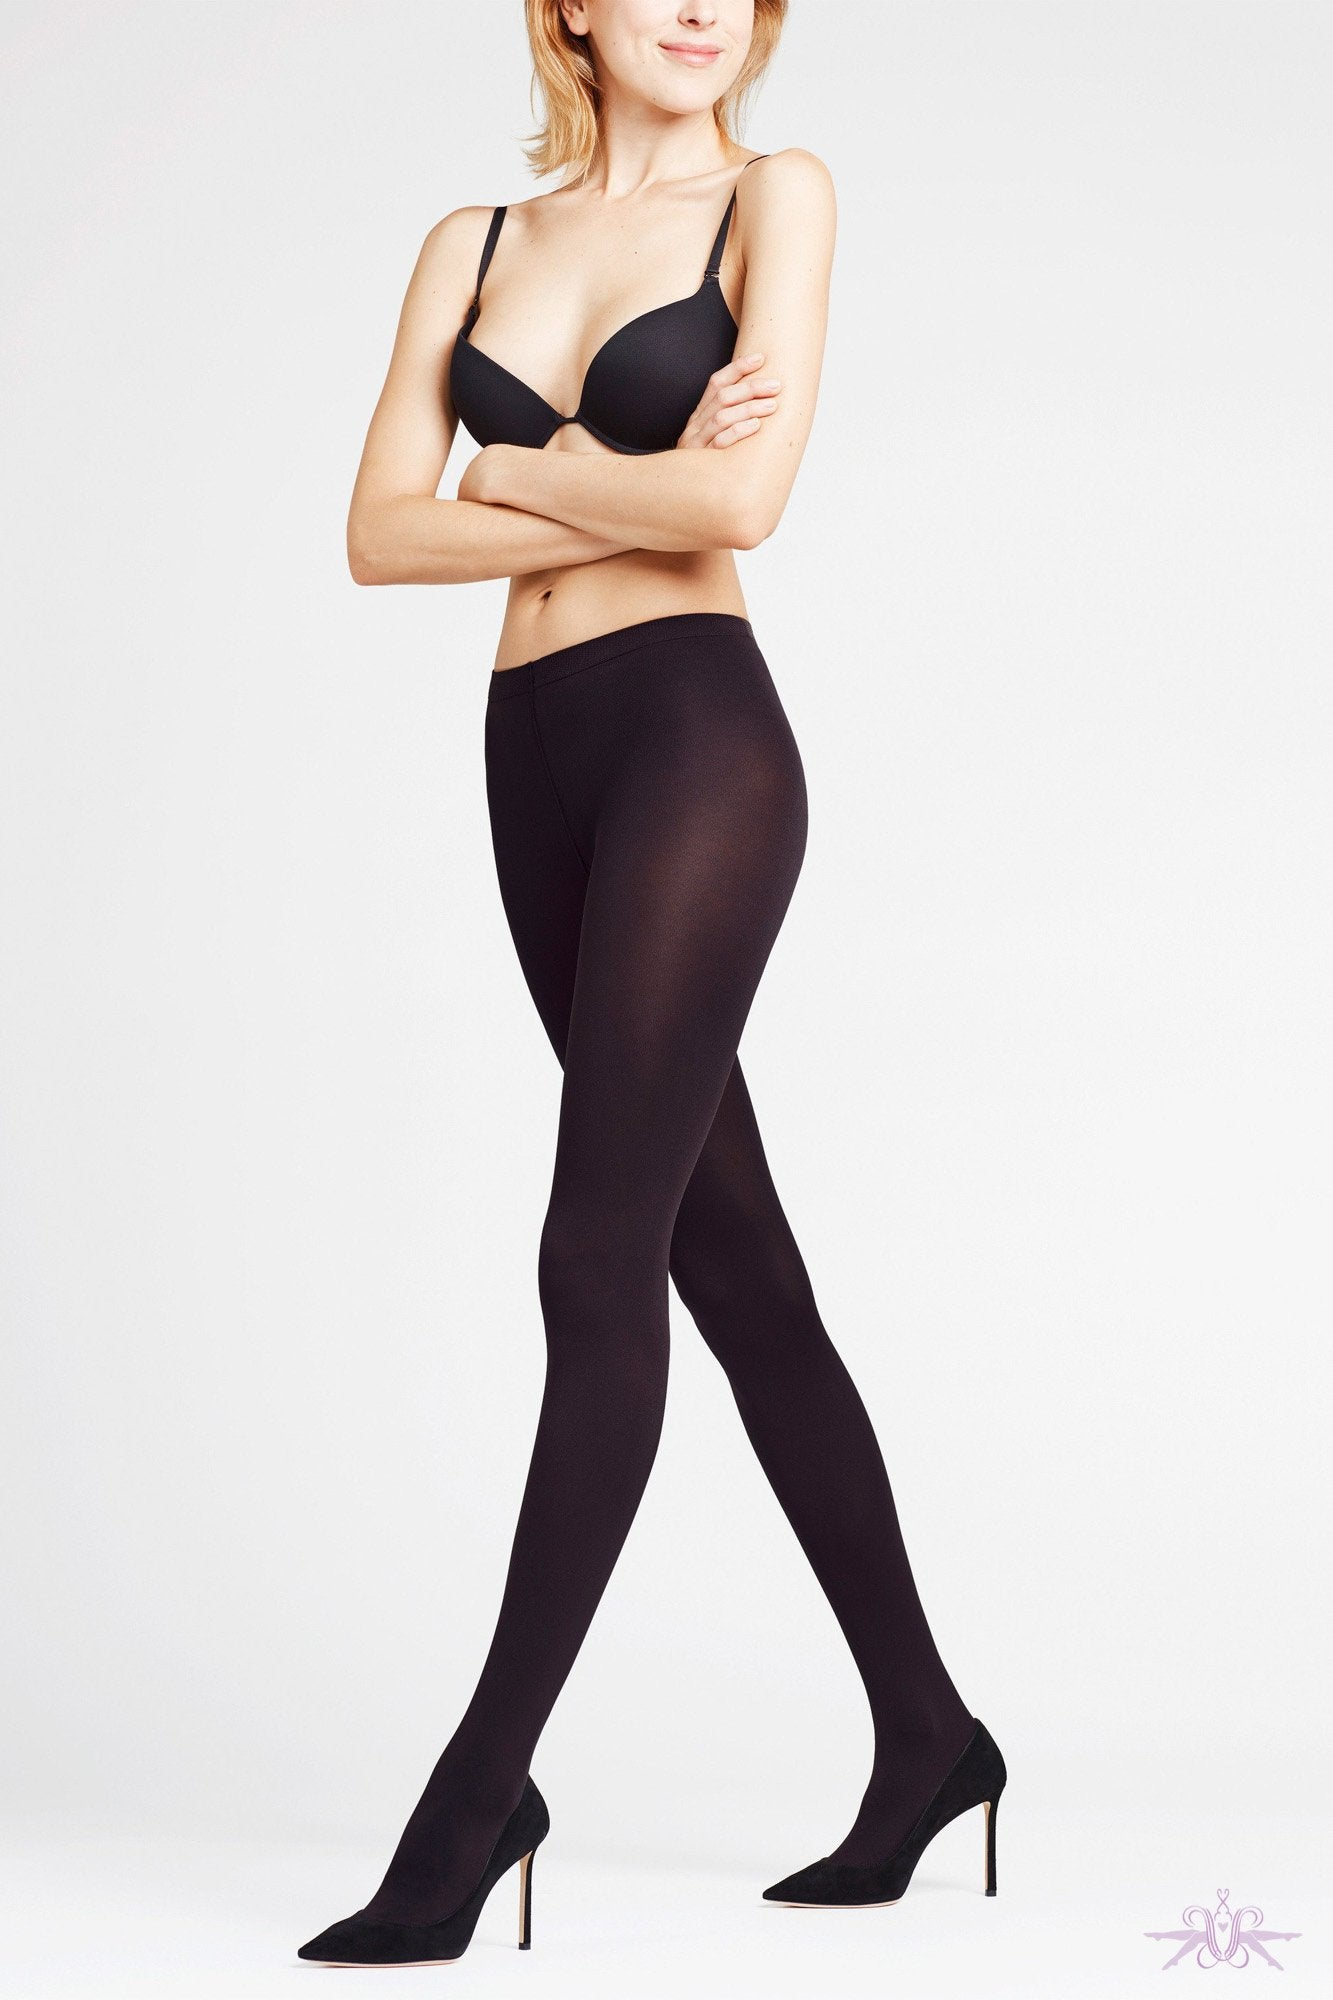 Falke Seidenglatt 70 Opaque Tights - The Hosiery Box